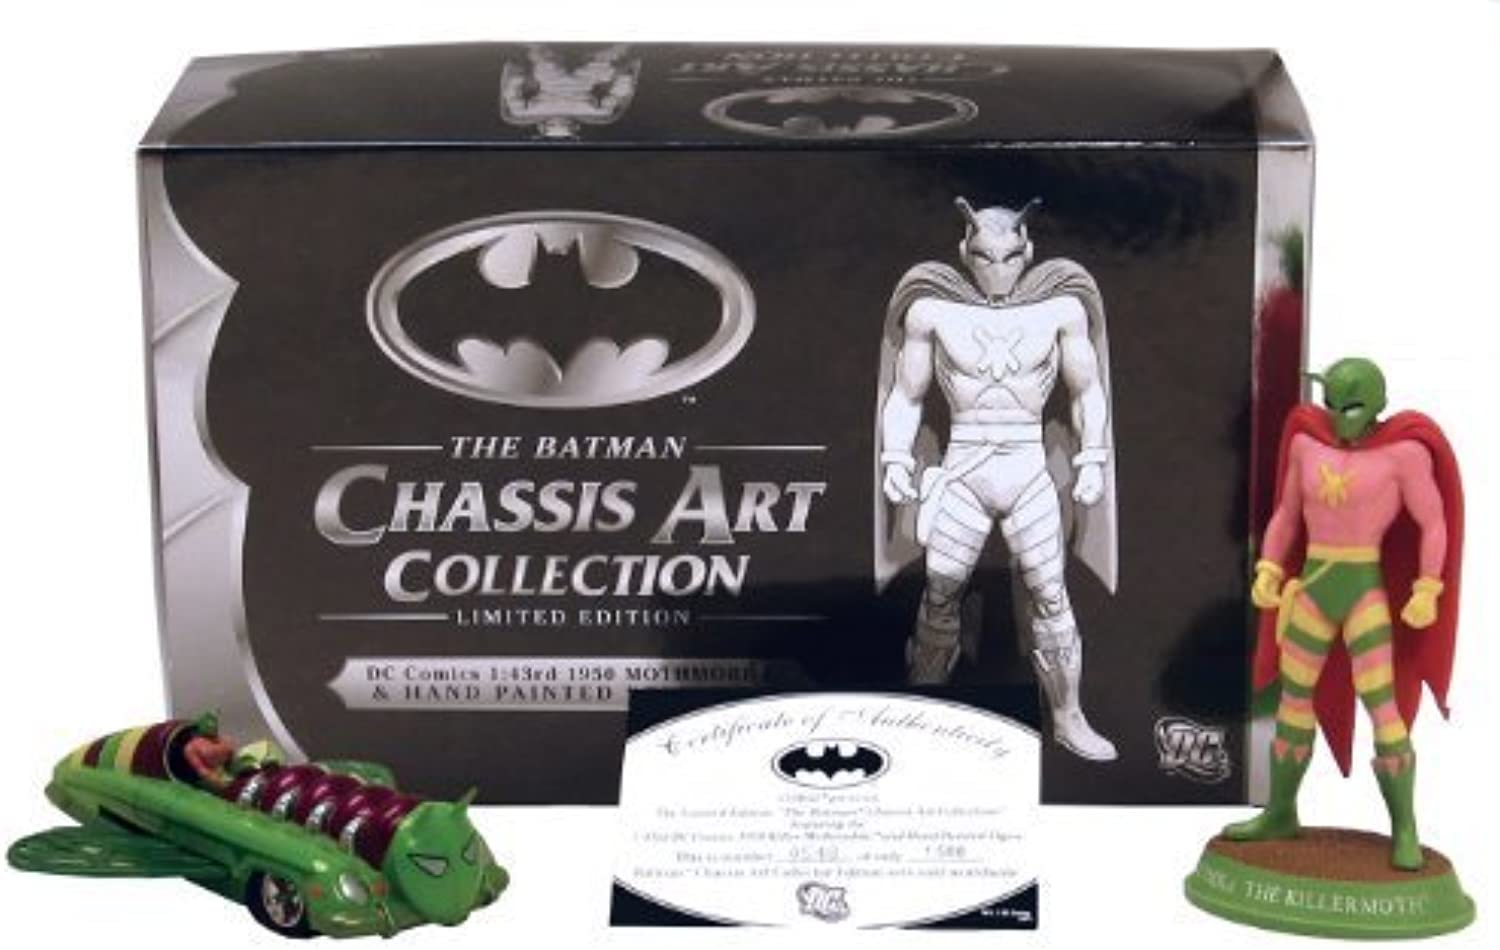 Batman Chassis Art Collection 1950 Mothmobile Figure by Master Replicas